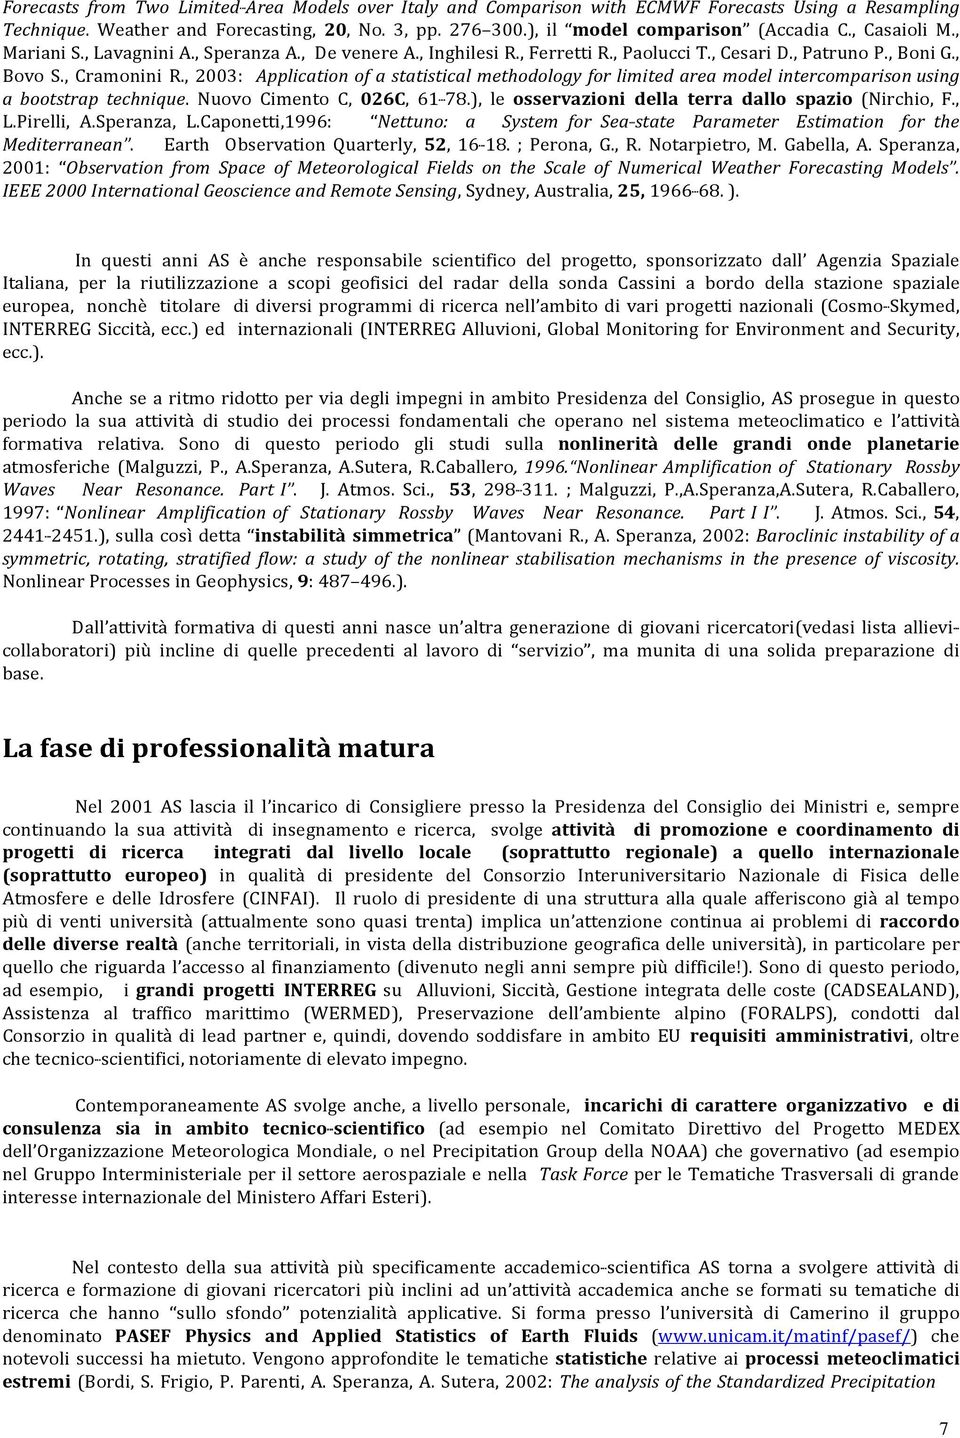 , 2003: Application of a statistical methodology for limited area model intercomparison using a bootstrap technique. Nuovo Cimento C, 026C, 61-78.